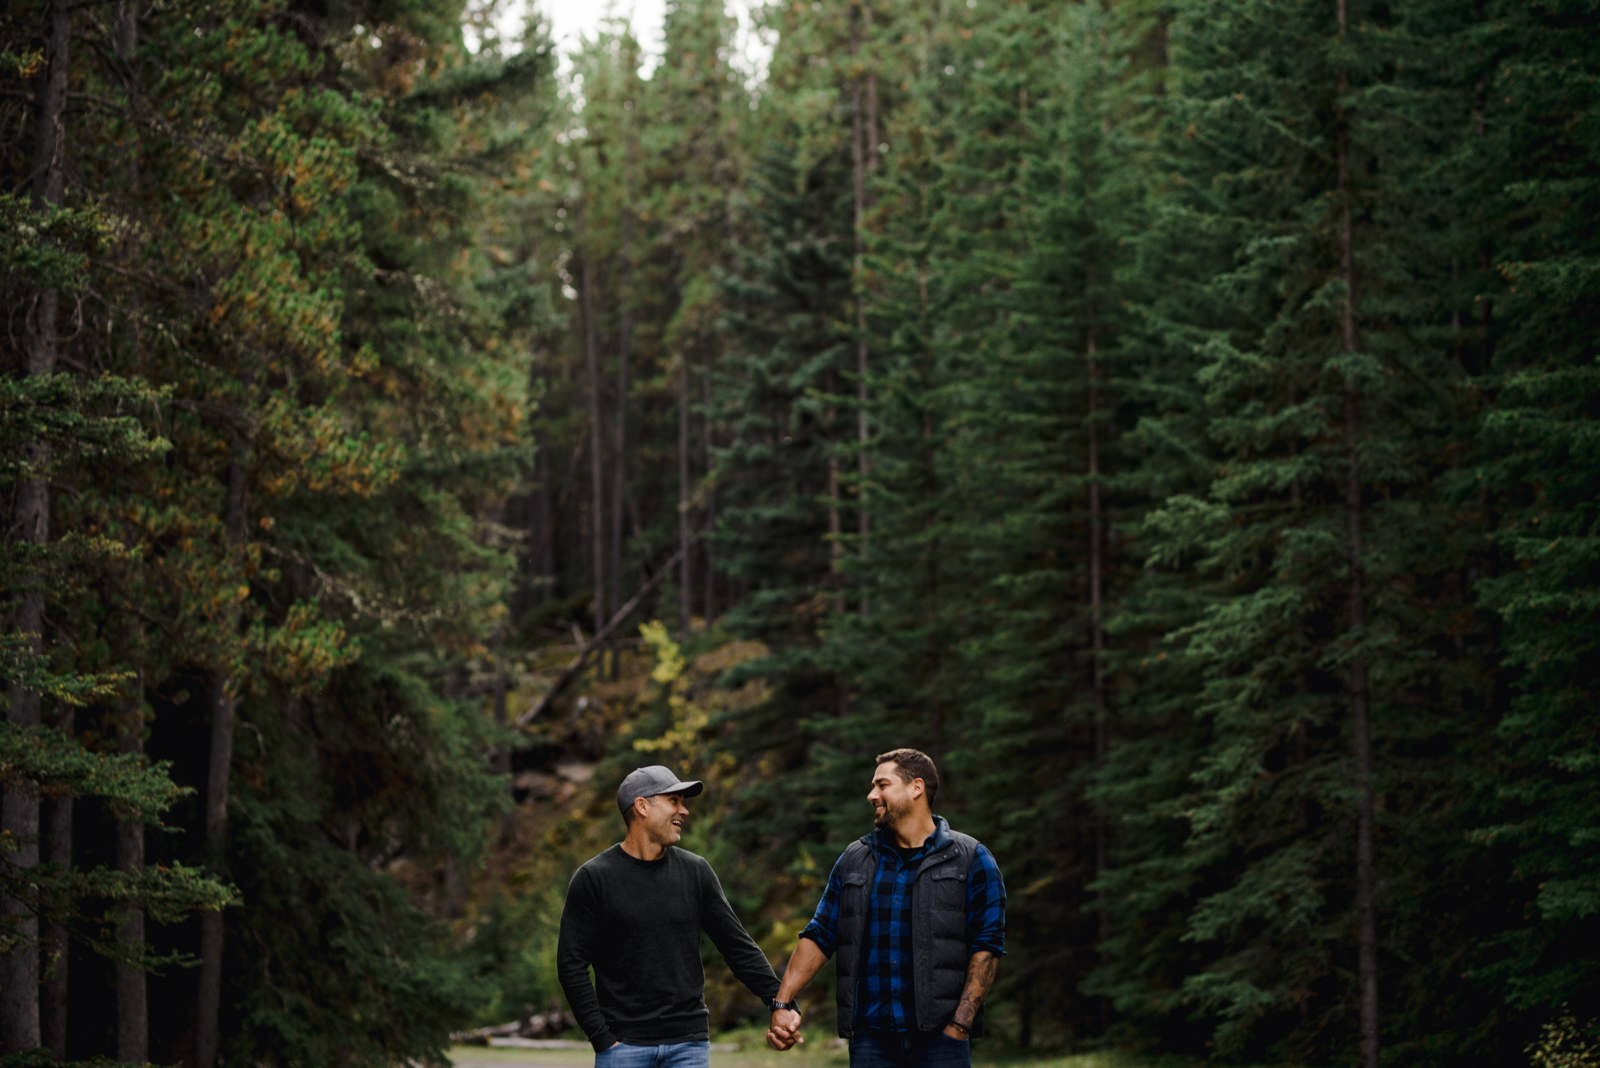 The Leddas Wedding Photography - Gary & Aaron: Banff Engagement